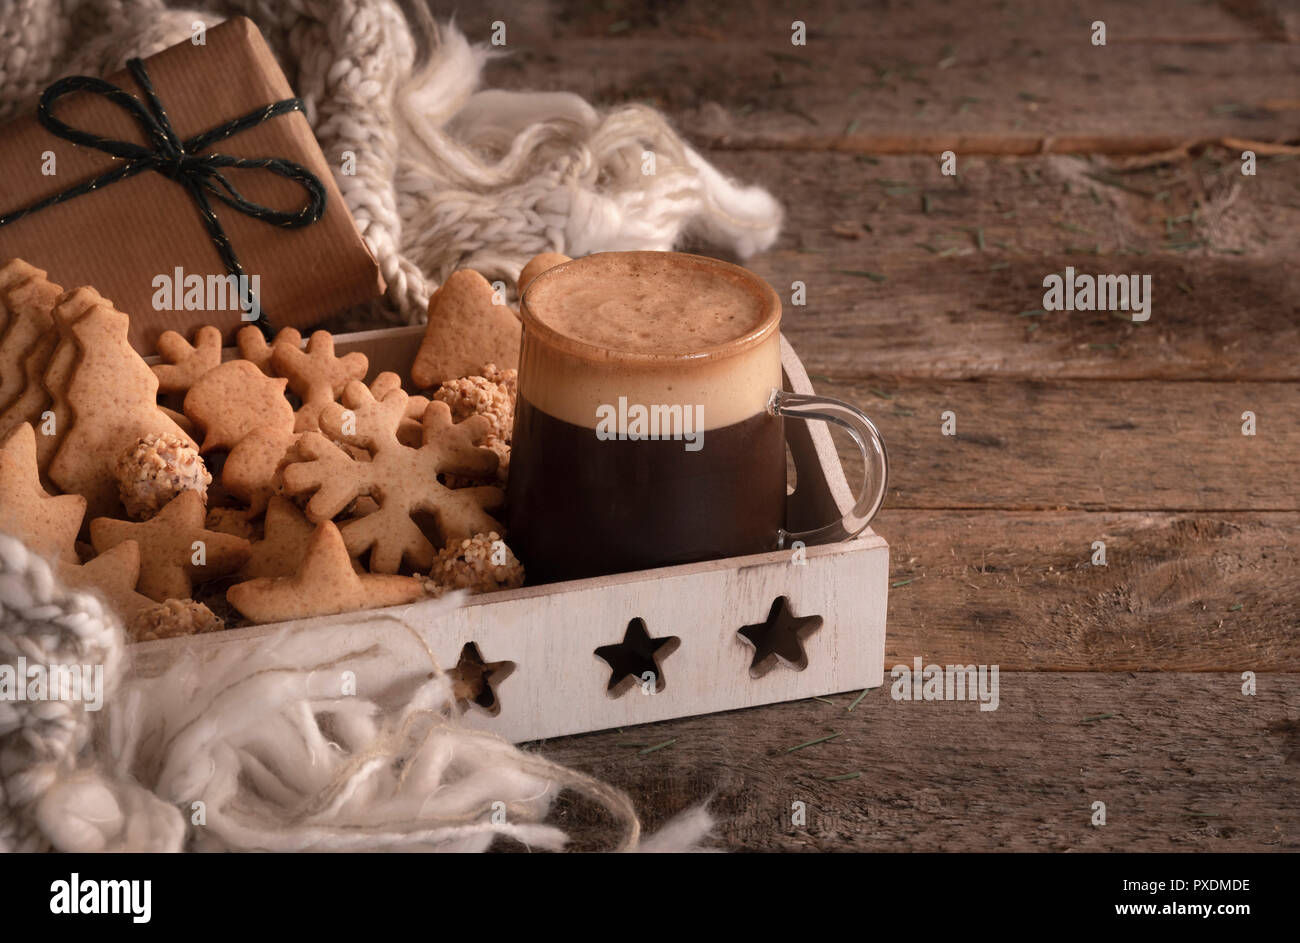 Christmas breakfast table with a tray full of gingerbread cookies, a cup of coffee, a wool scarf, and a gift, on a vintage wooden table. - Stock Image